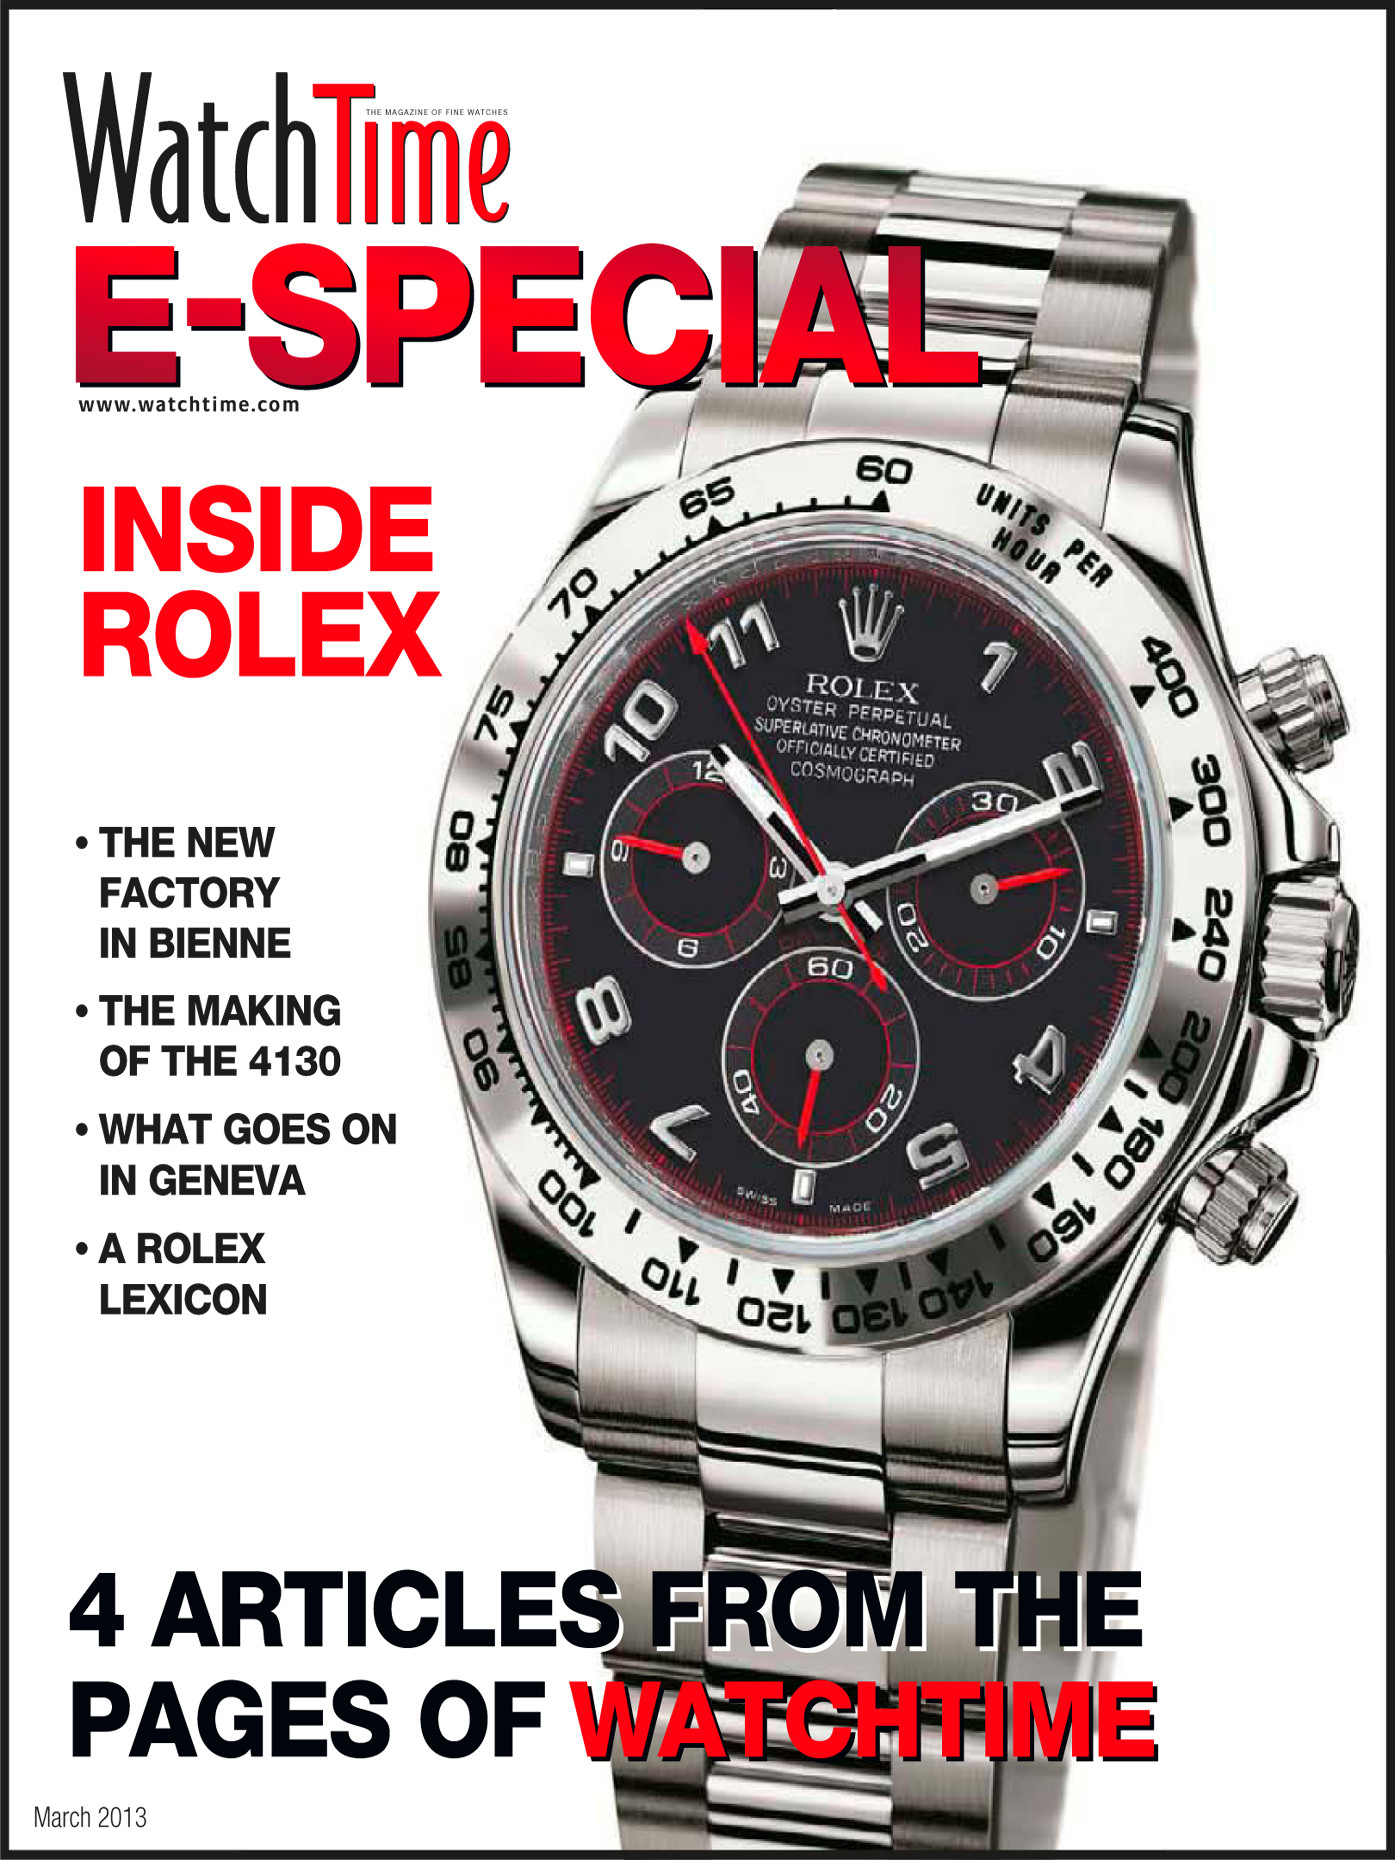 WatchTime E-Special: Rolex